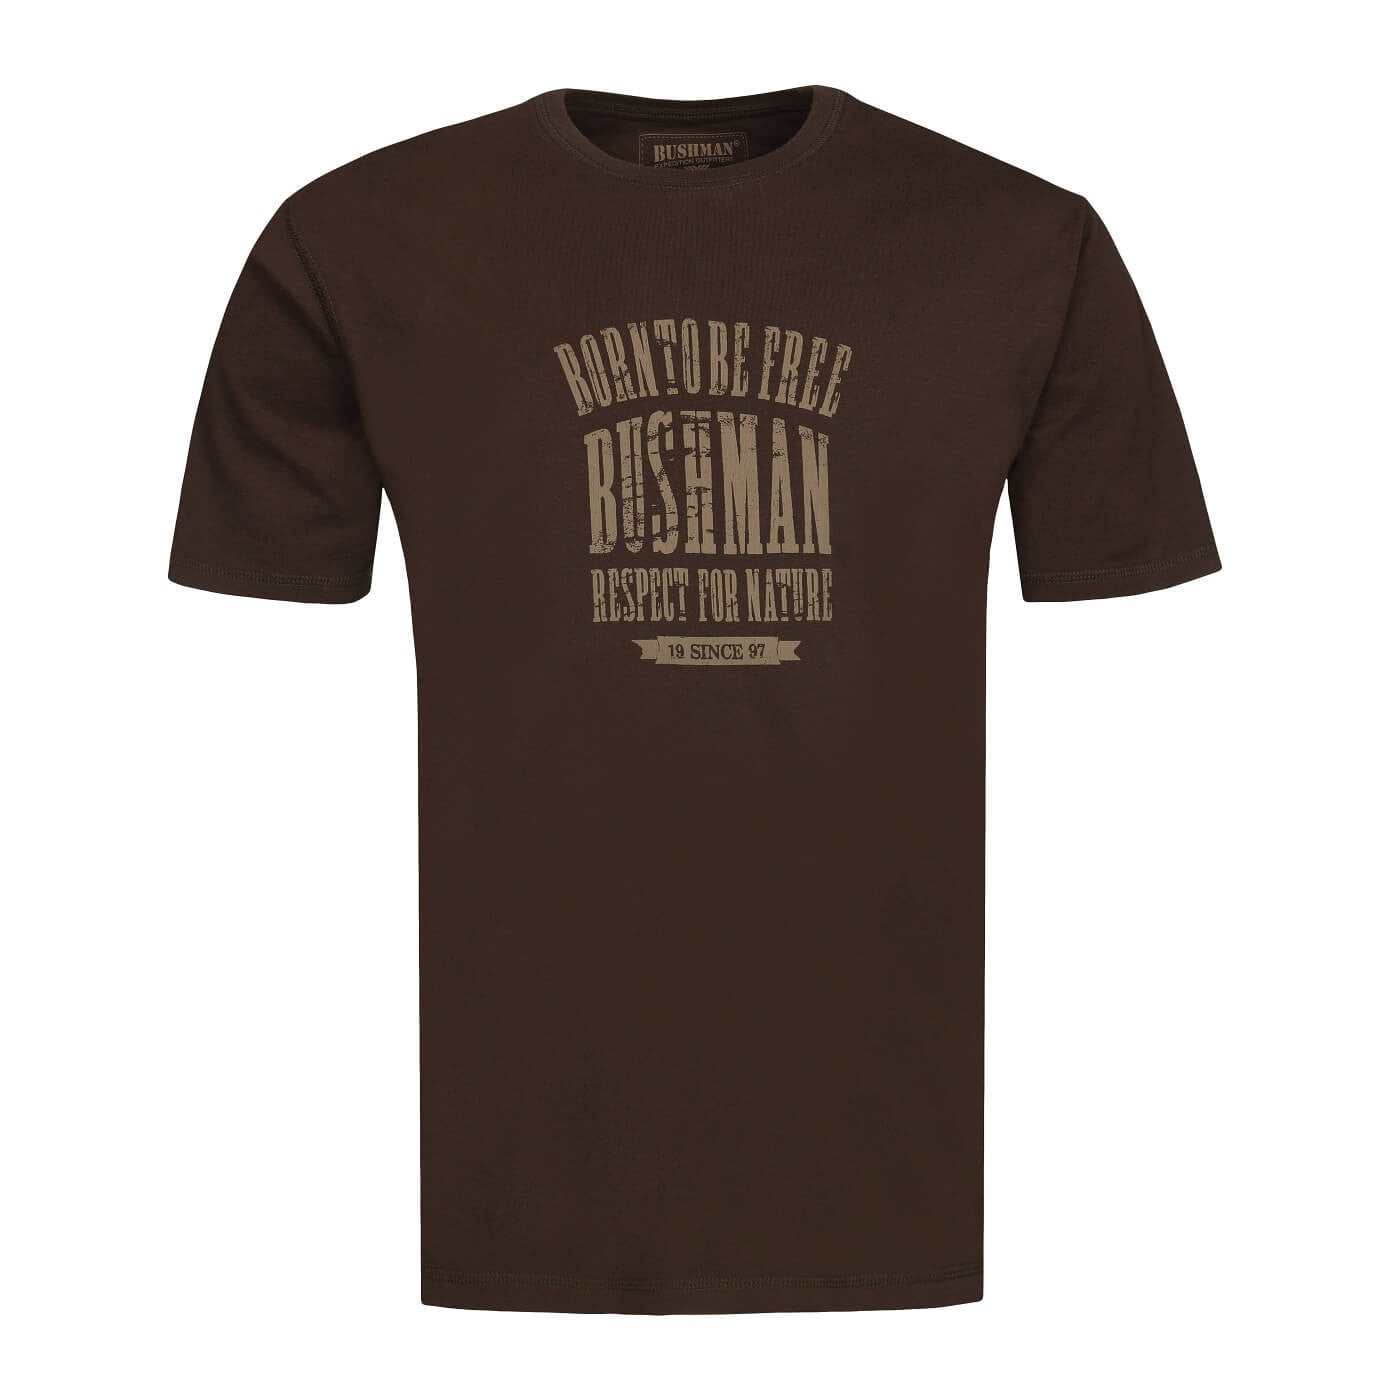 BUSHMANSHOP GILBY MEN'S DARK BROWN COTTON SHORT SLEEVE T-SHIRT